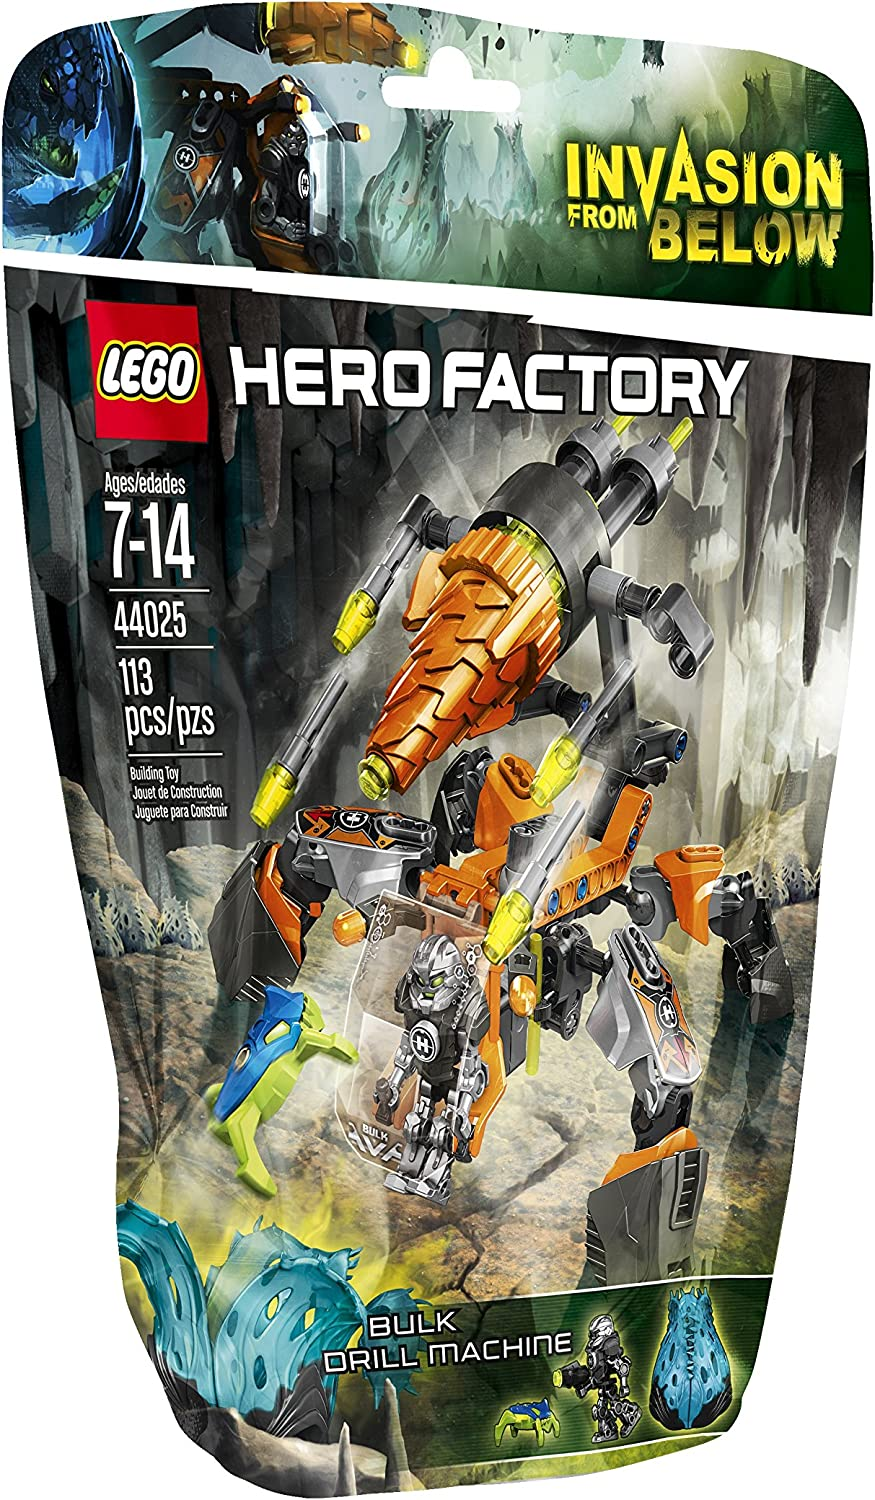 LEGO Hero Factory Bulk Drill Machine 44025 Building Set